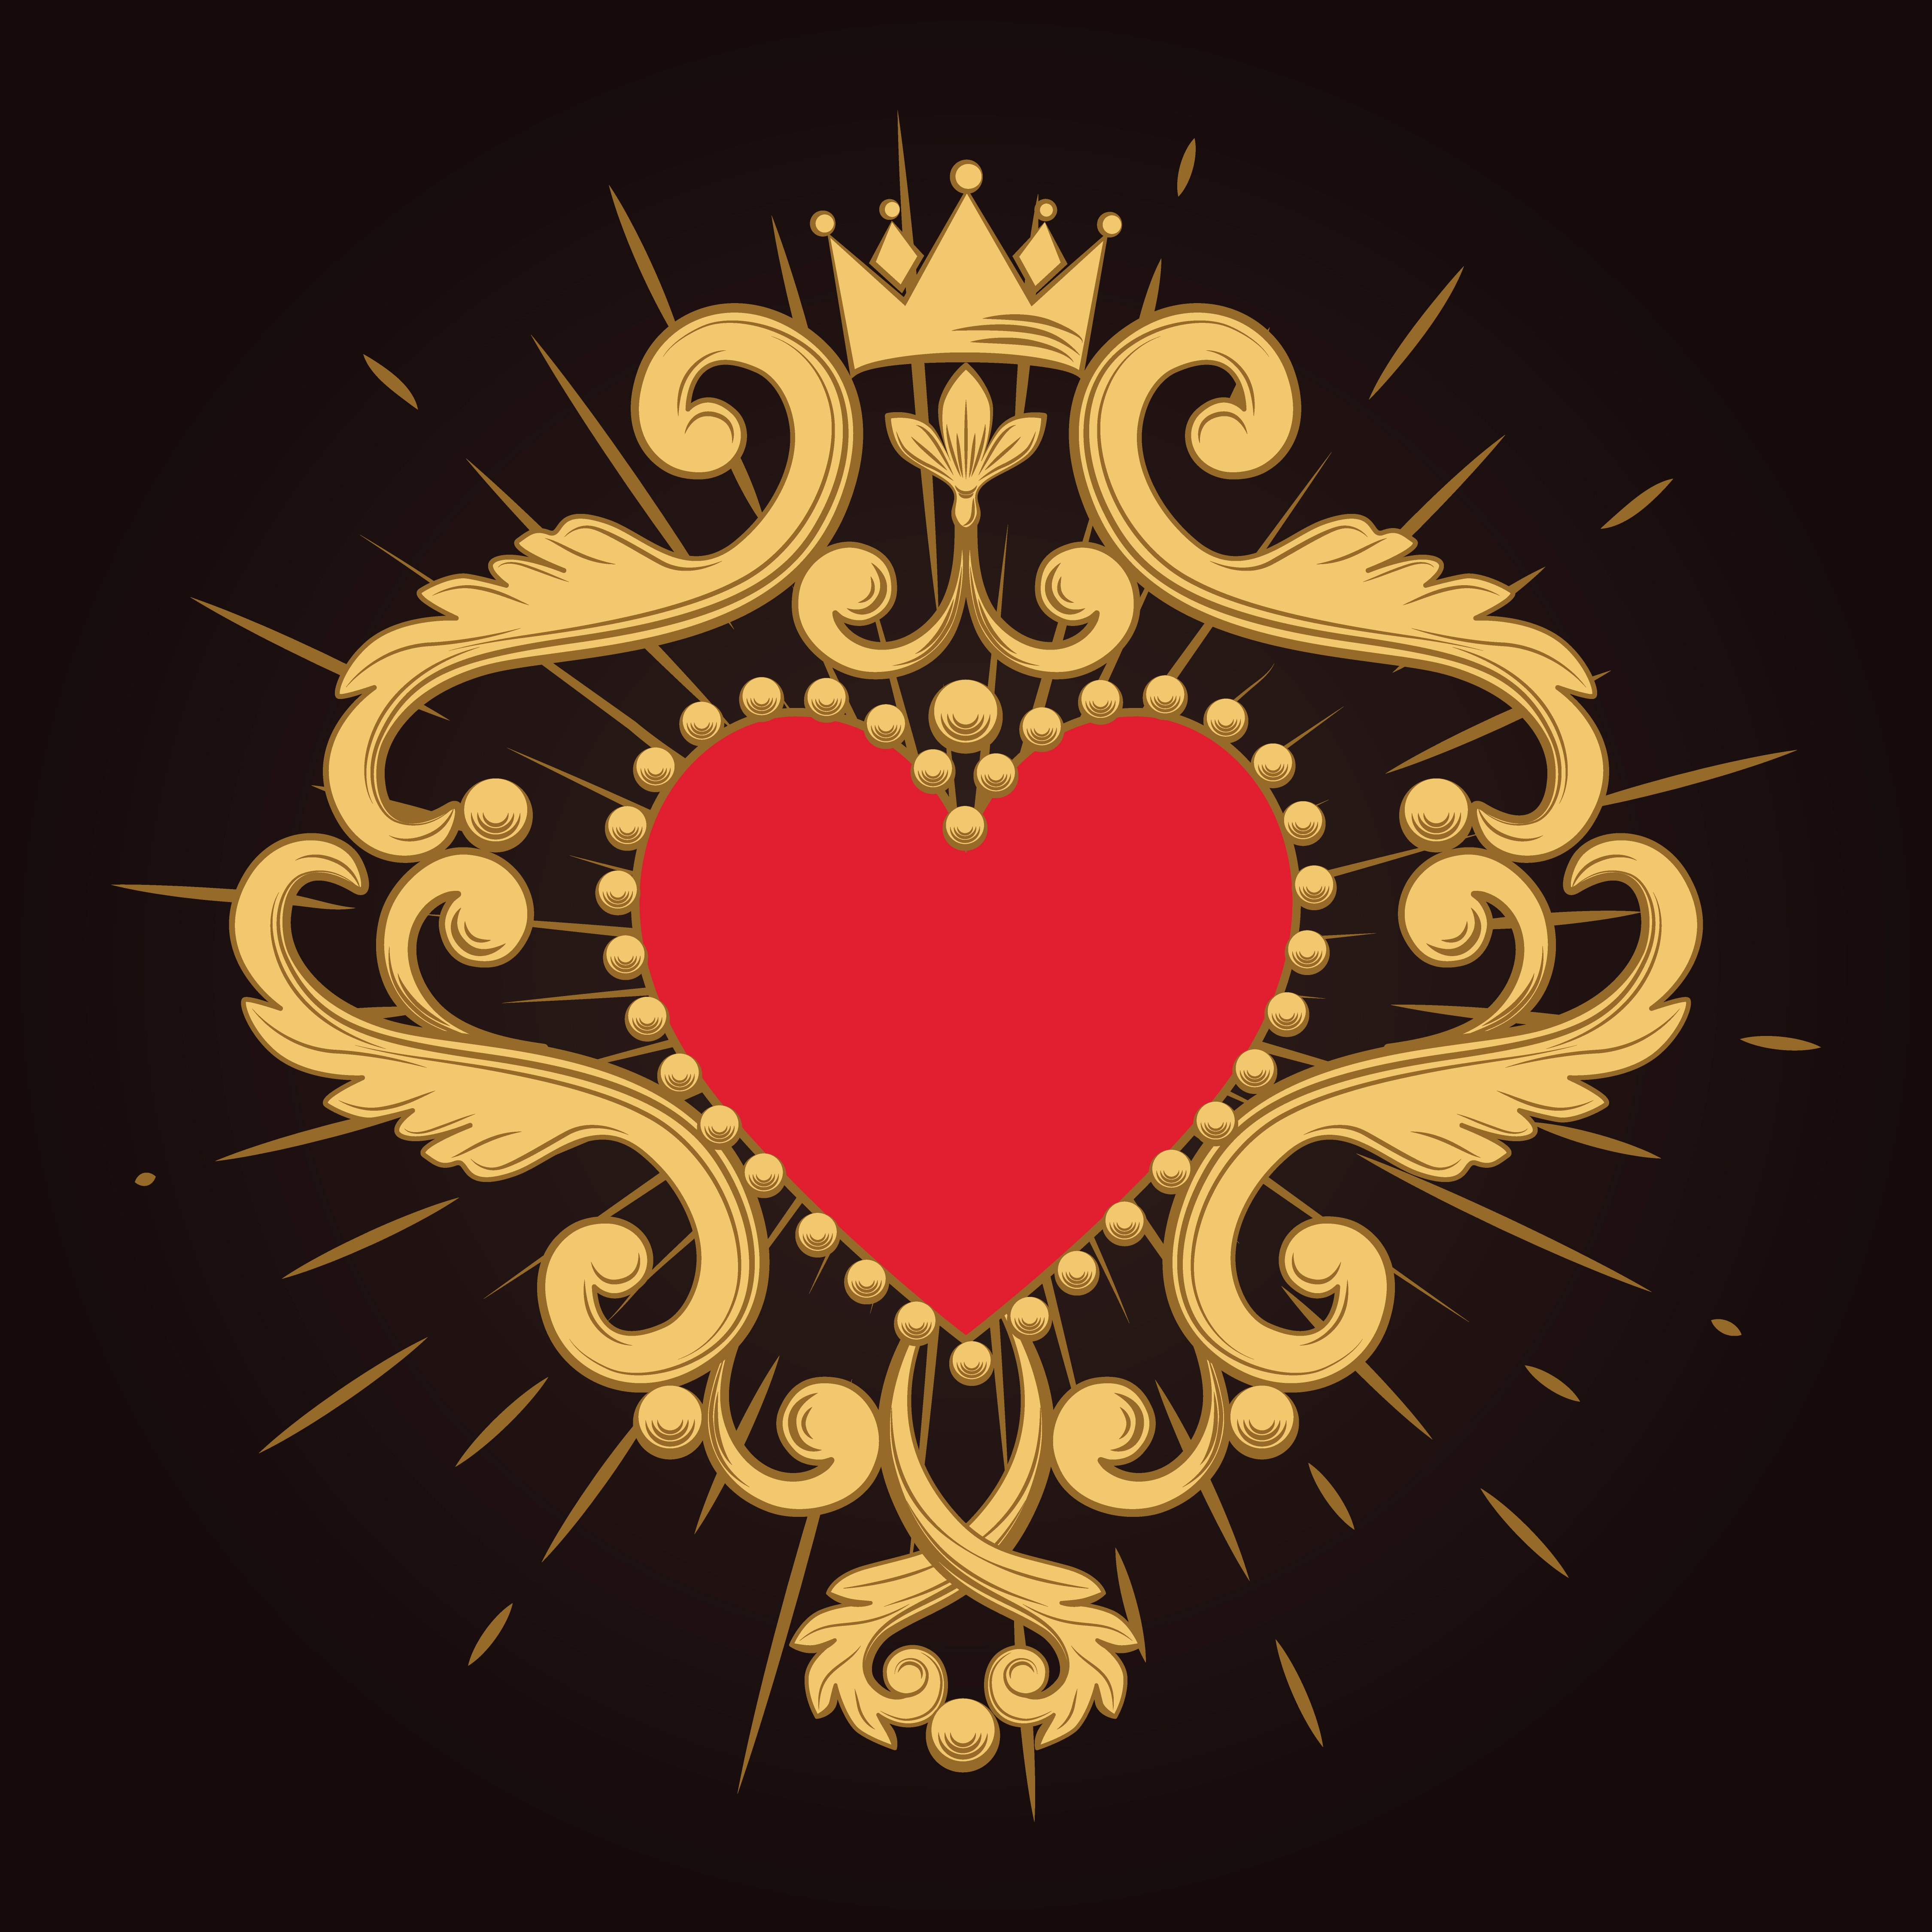 Vintage Ornamental Design Elements: Beautiful Ornamental Red Heart With Crown On Black